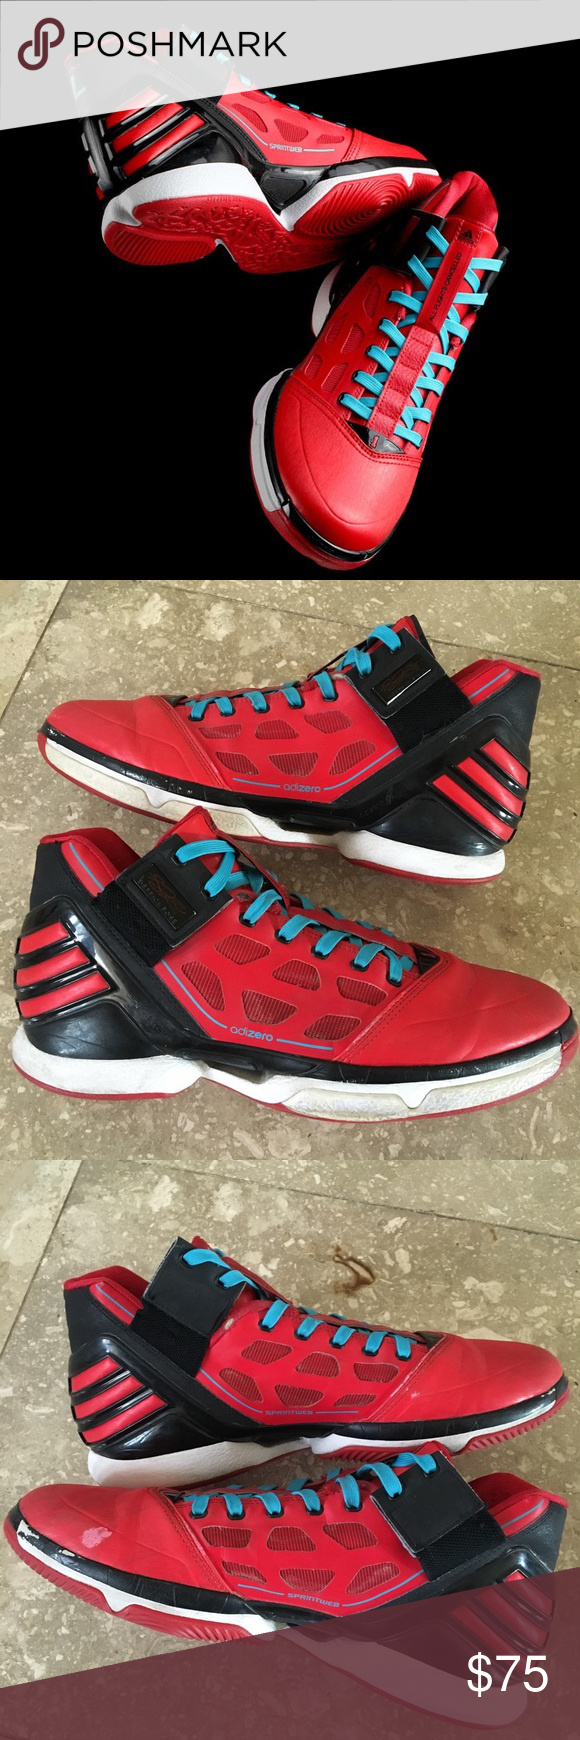 53d6b20c55d2 Adizero Rose 2.0 Windy City Rose Adizero 2.0 by Adidas. Good used  condition